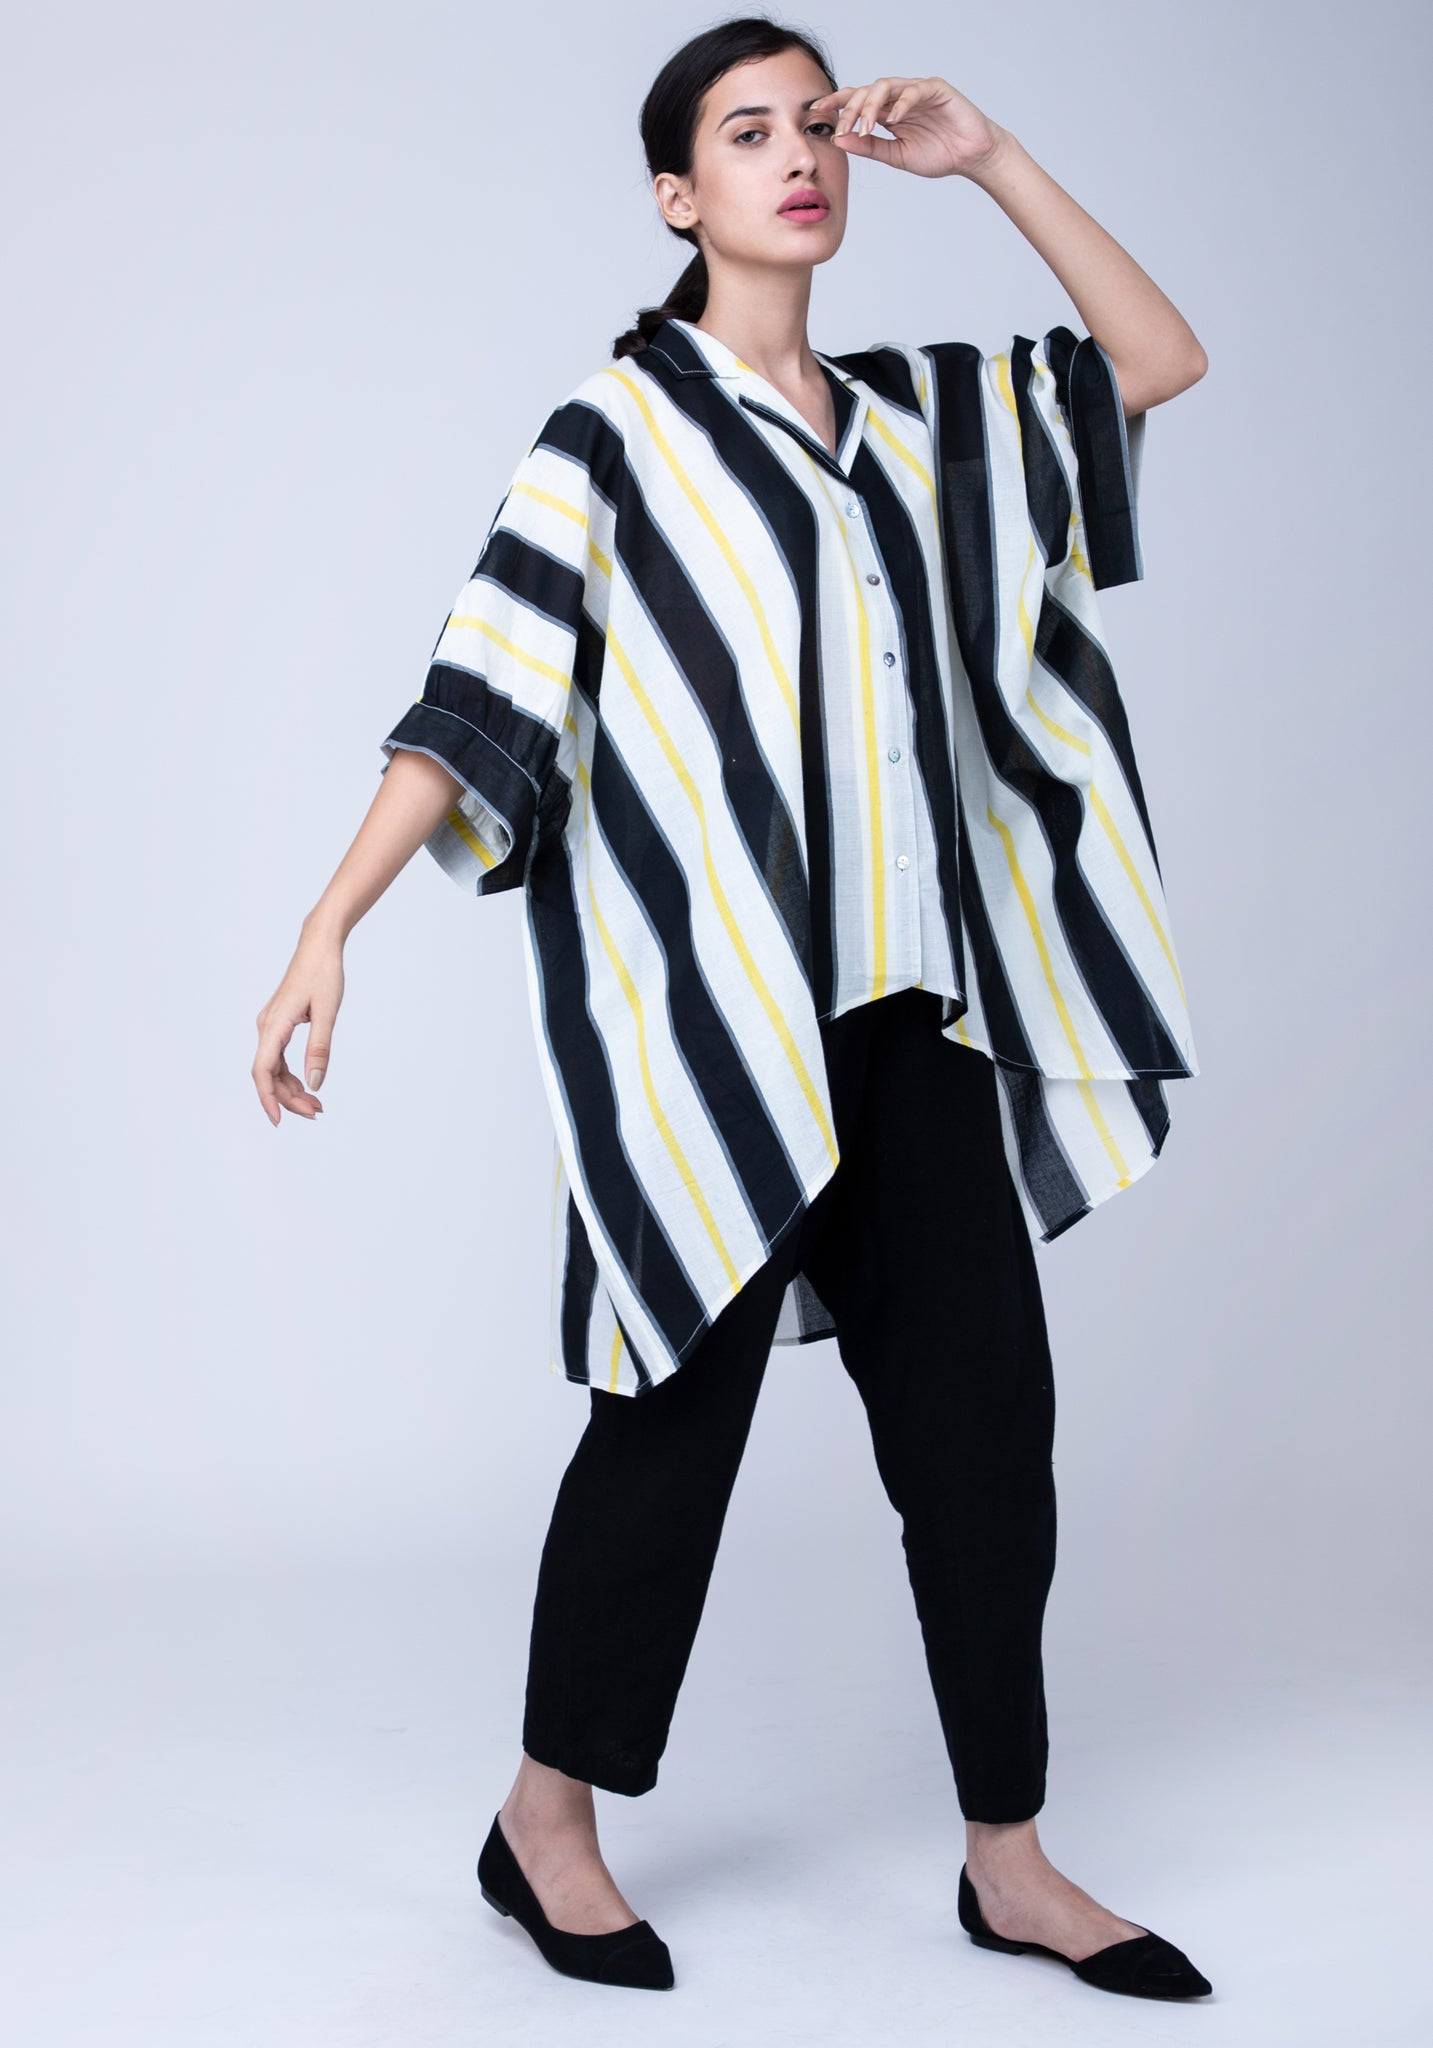 Naviyata Loose Fit Shirt